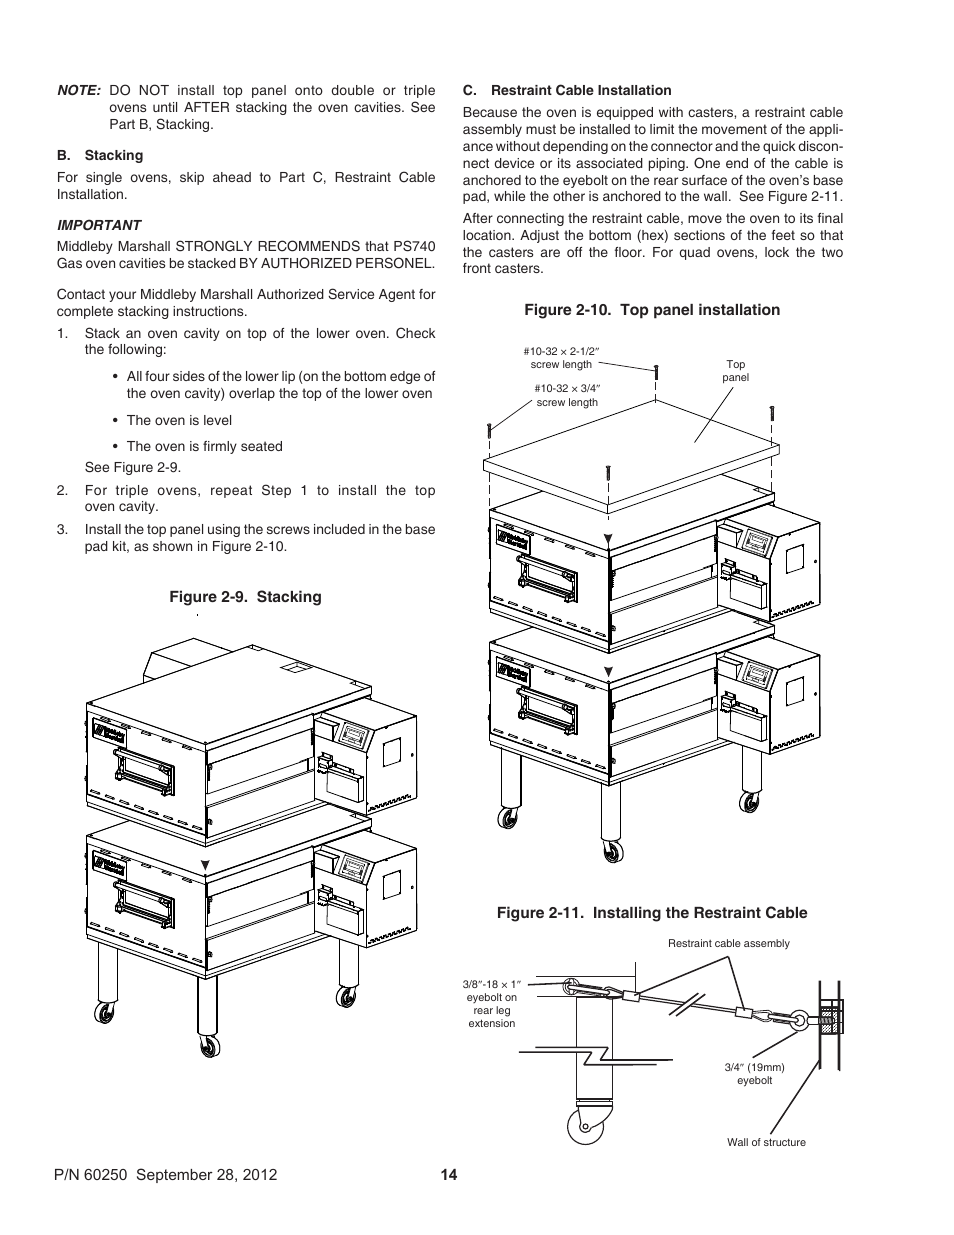 Middleby Marshall PS740 Series Gas Ovens P/N 60250 User Manual | Page 18 /